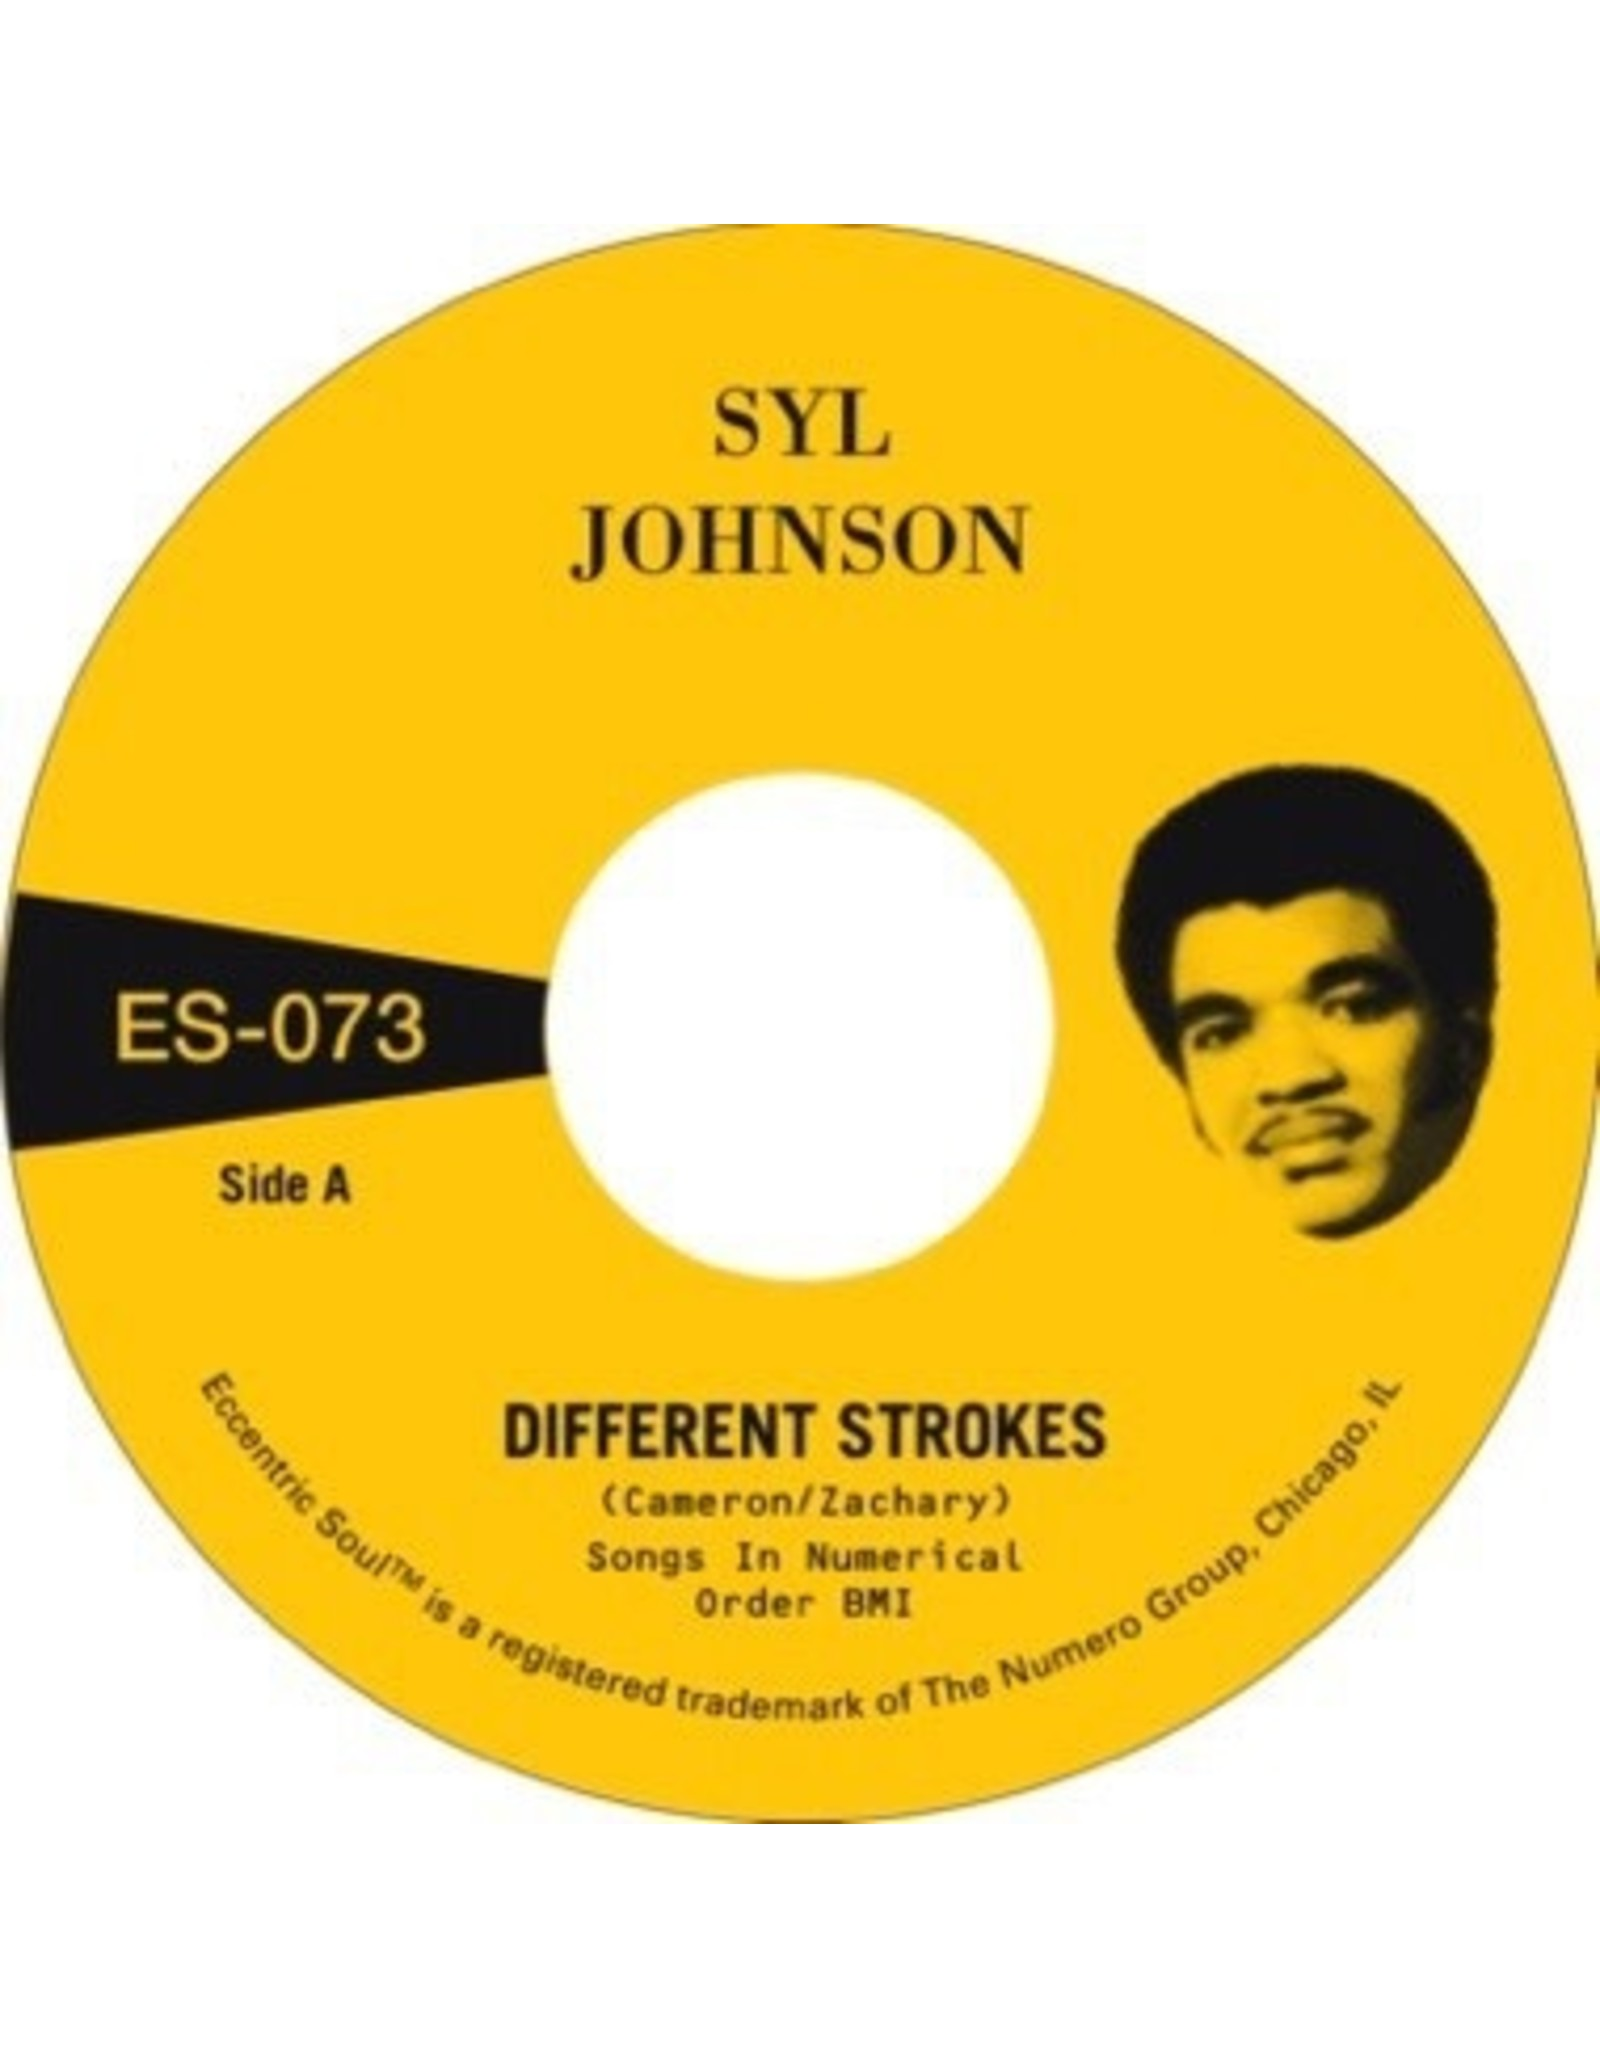 """New Vinyl Syl Johnson - Different Strokes b/w Is It Because I'm Black (Gold) 7"""""""